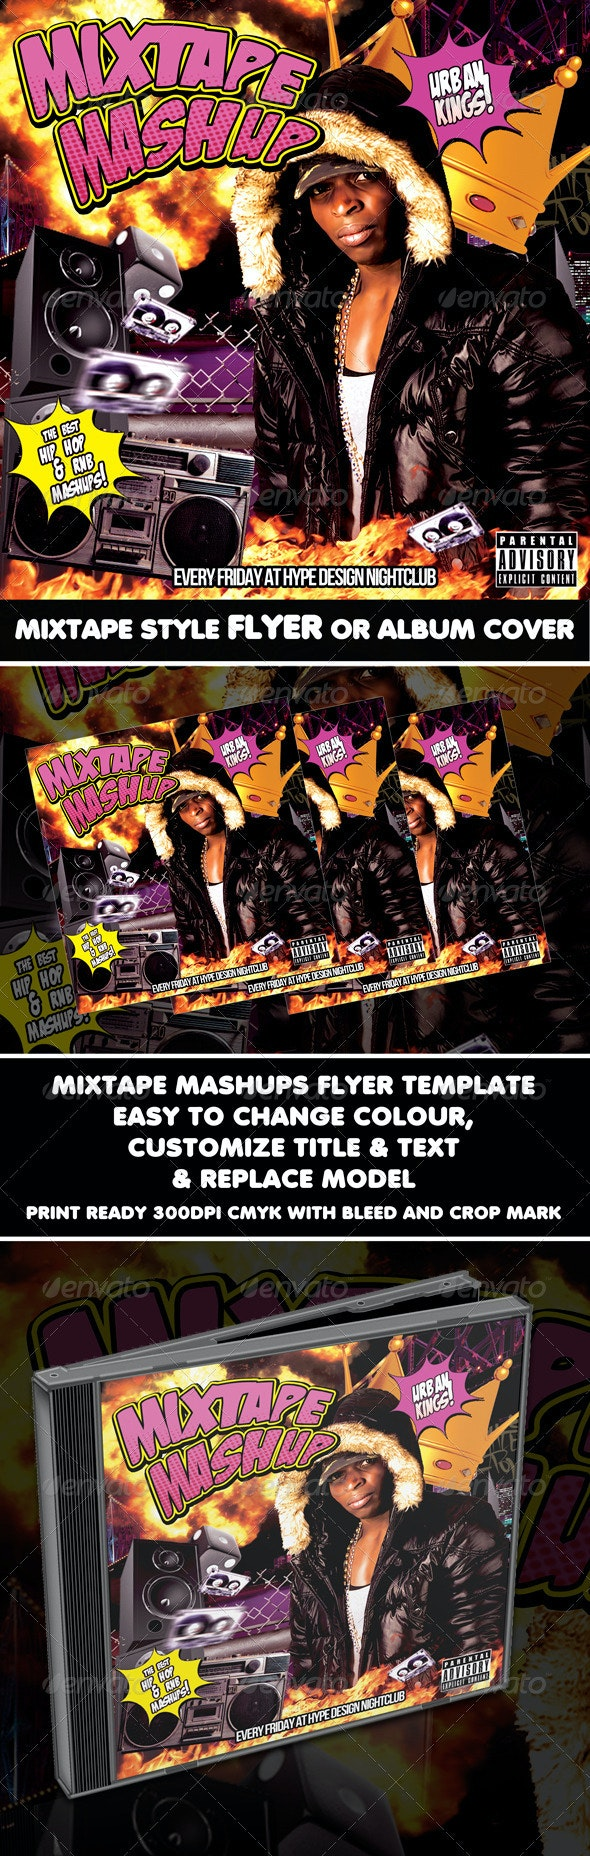 Mixtape Mashup Urban Kings Flyer or CD Template - CD & DVD Artwork Print Templates